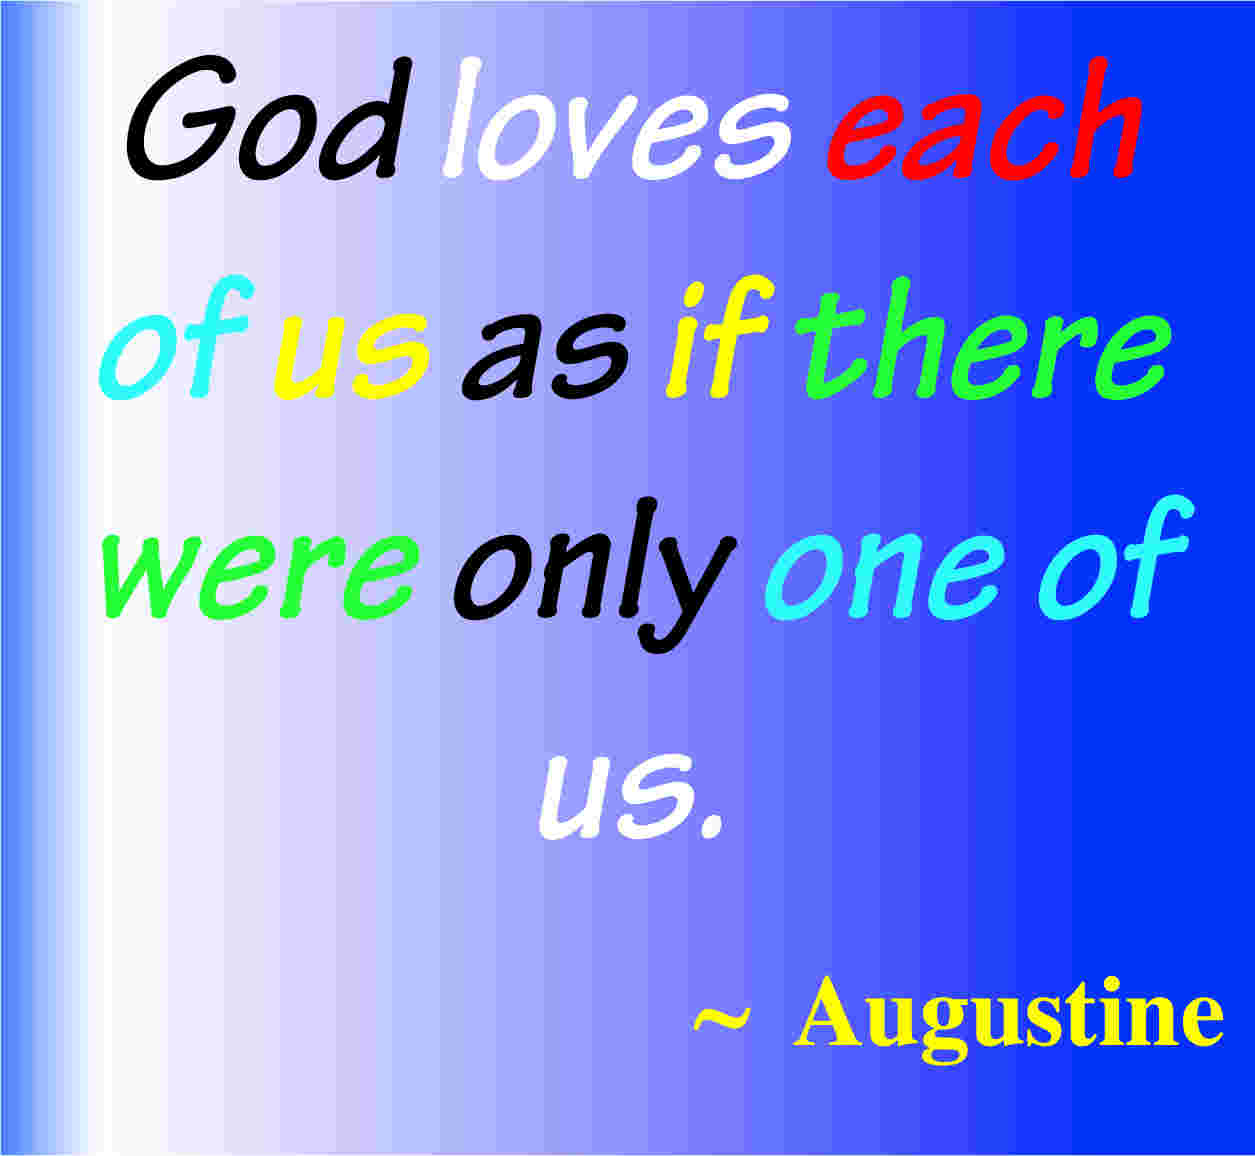 Quotes About Love In The Bible 20 Inspirational Bible Verses About God's Love